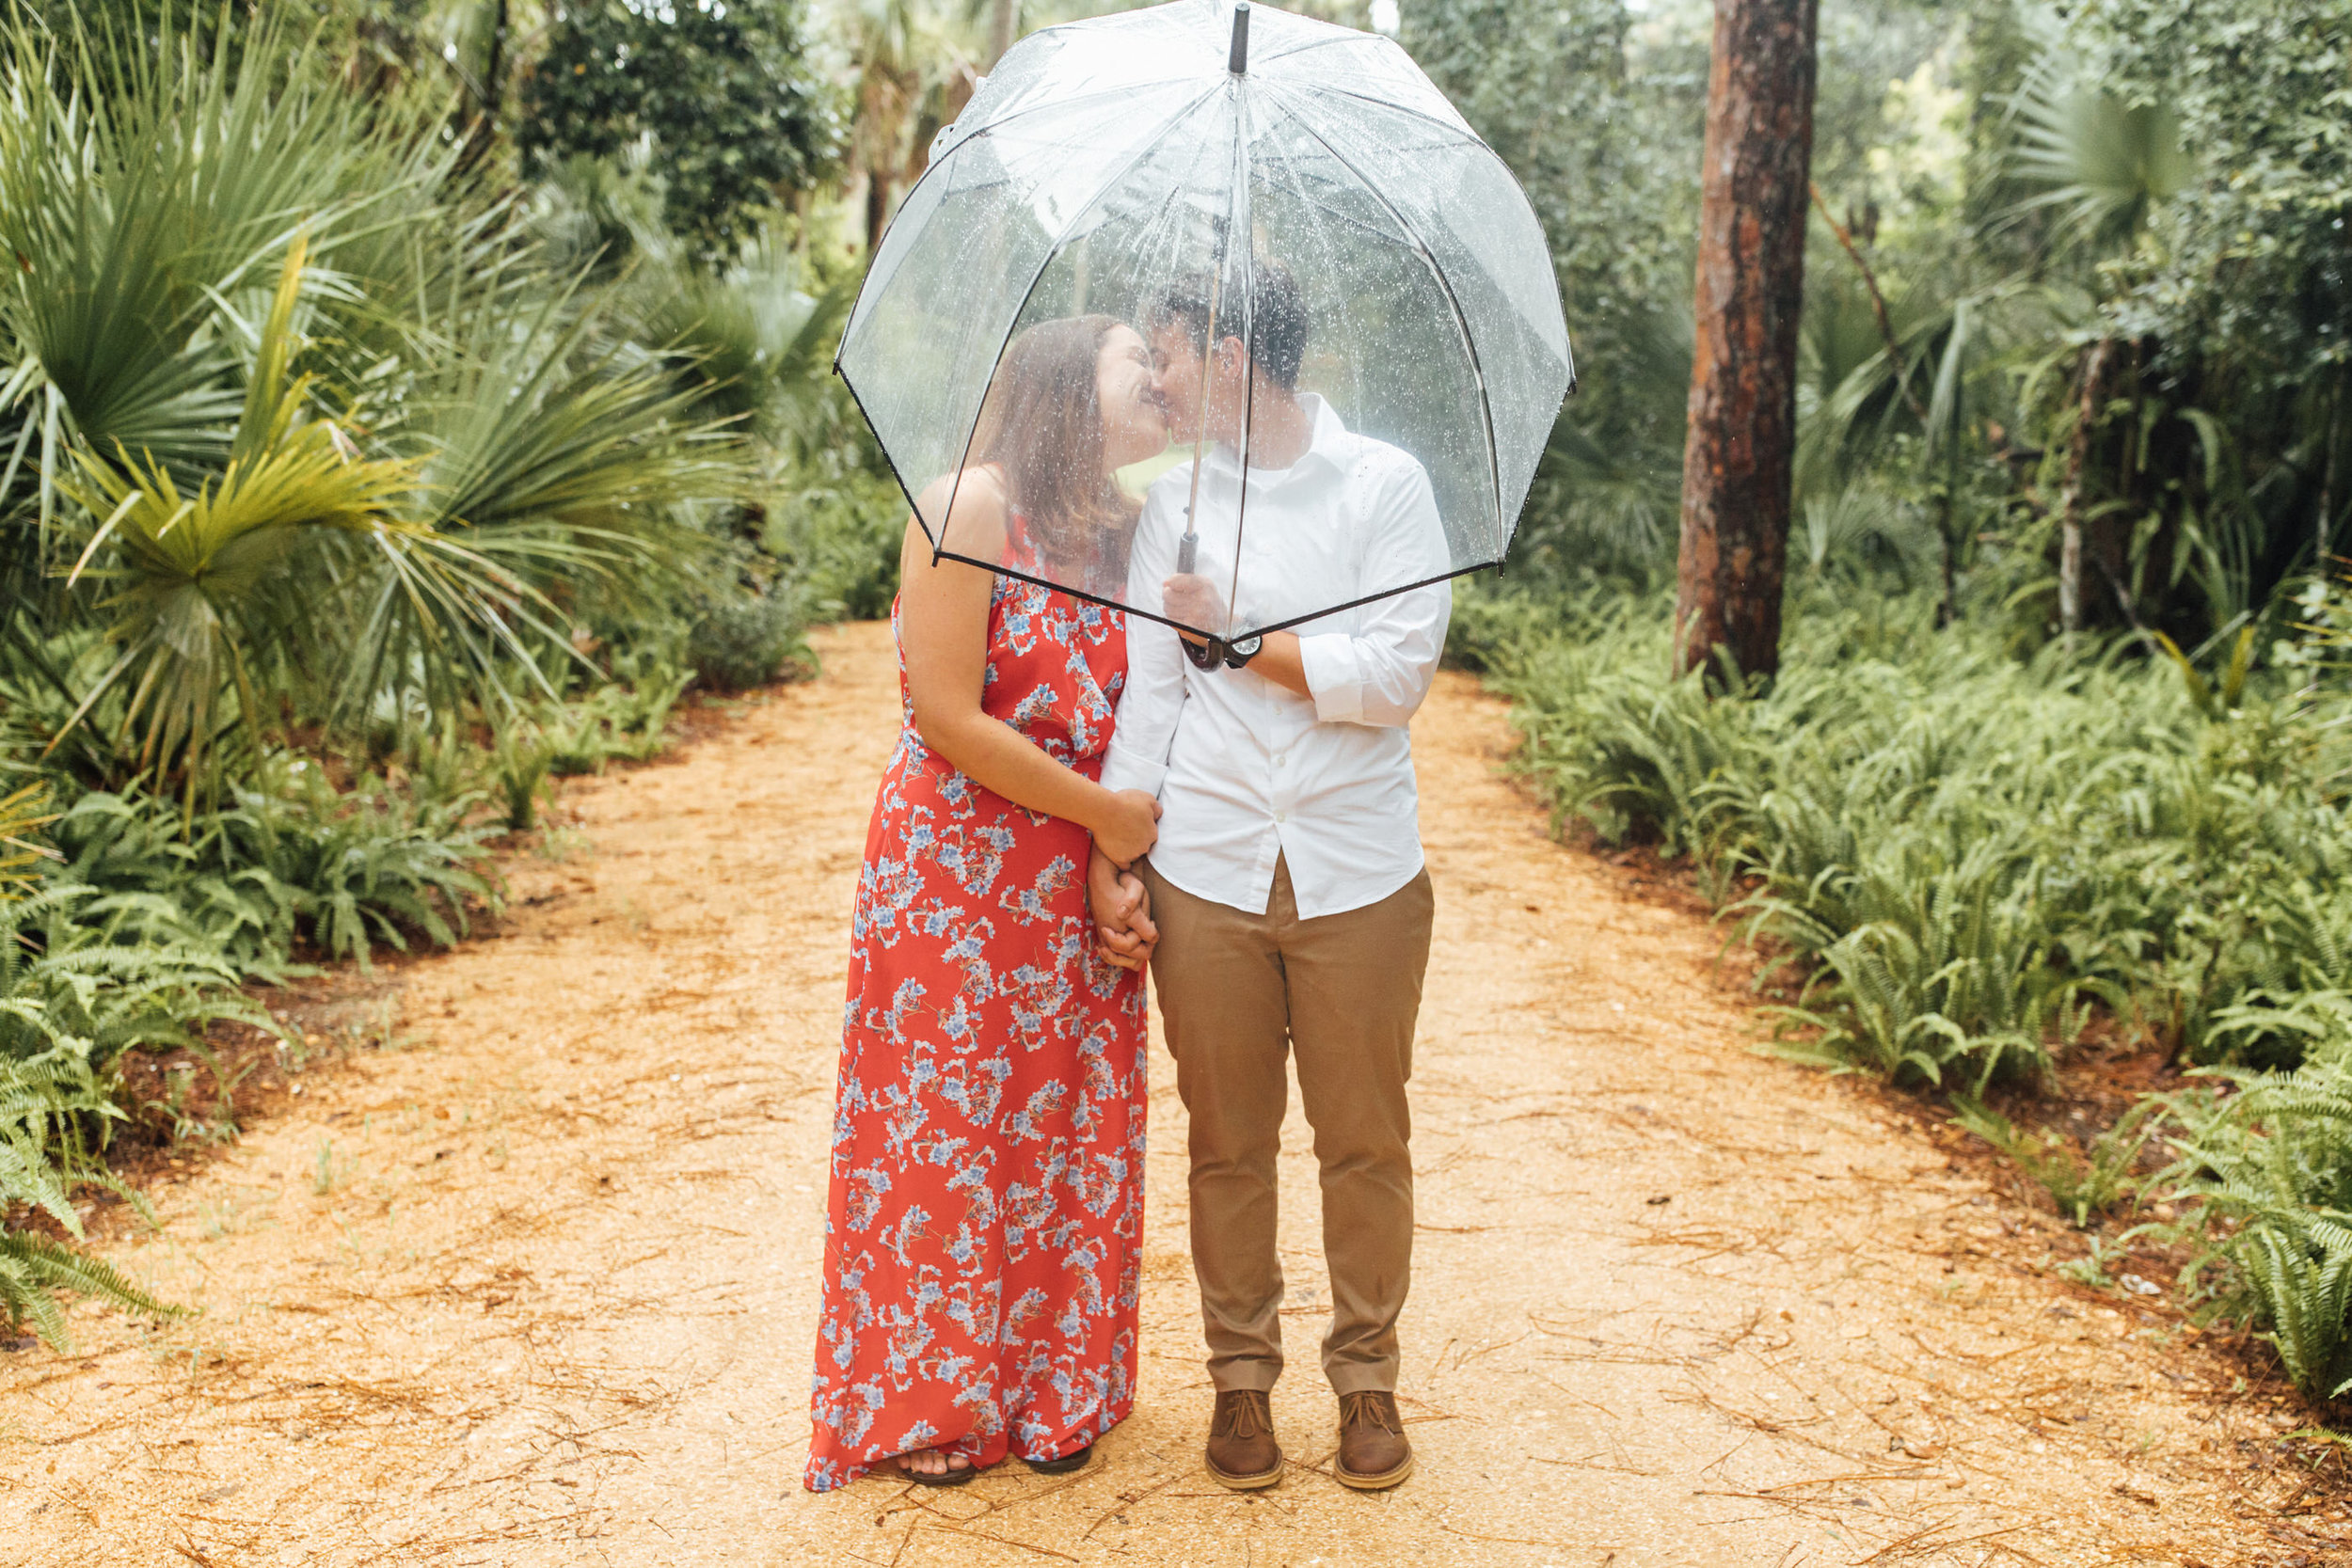 Orlando Natural Forest State Park Engagement Photos- Romantic LGBT Engaged Couples photos25.jpg